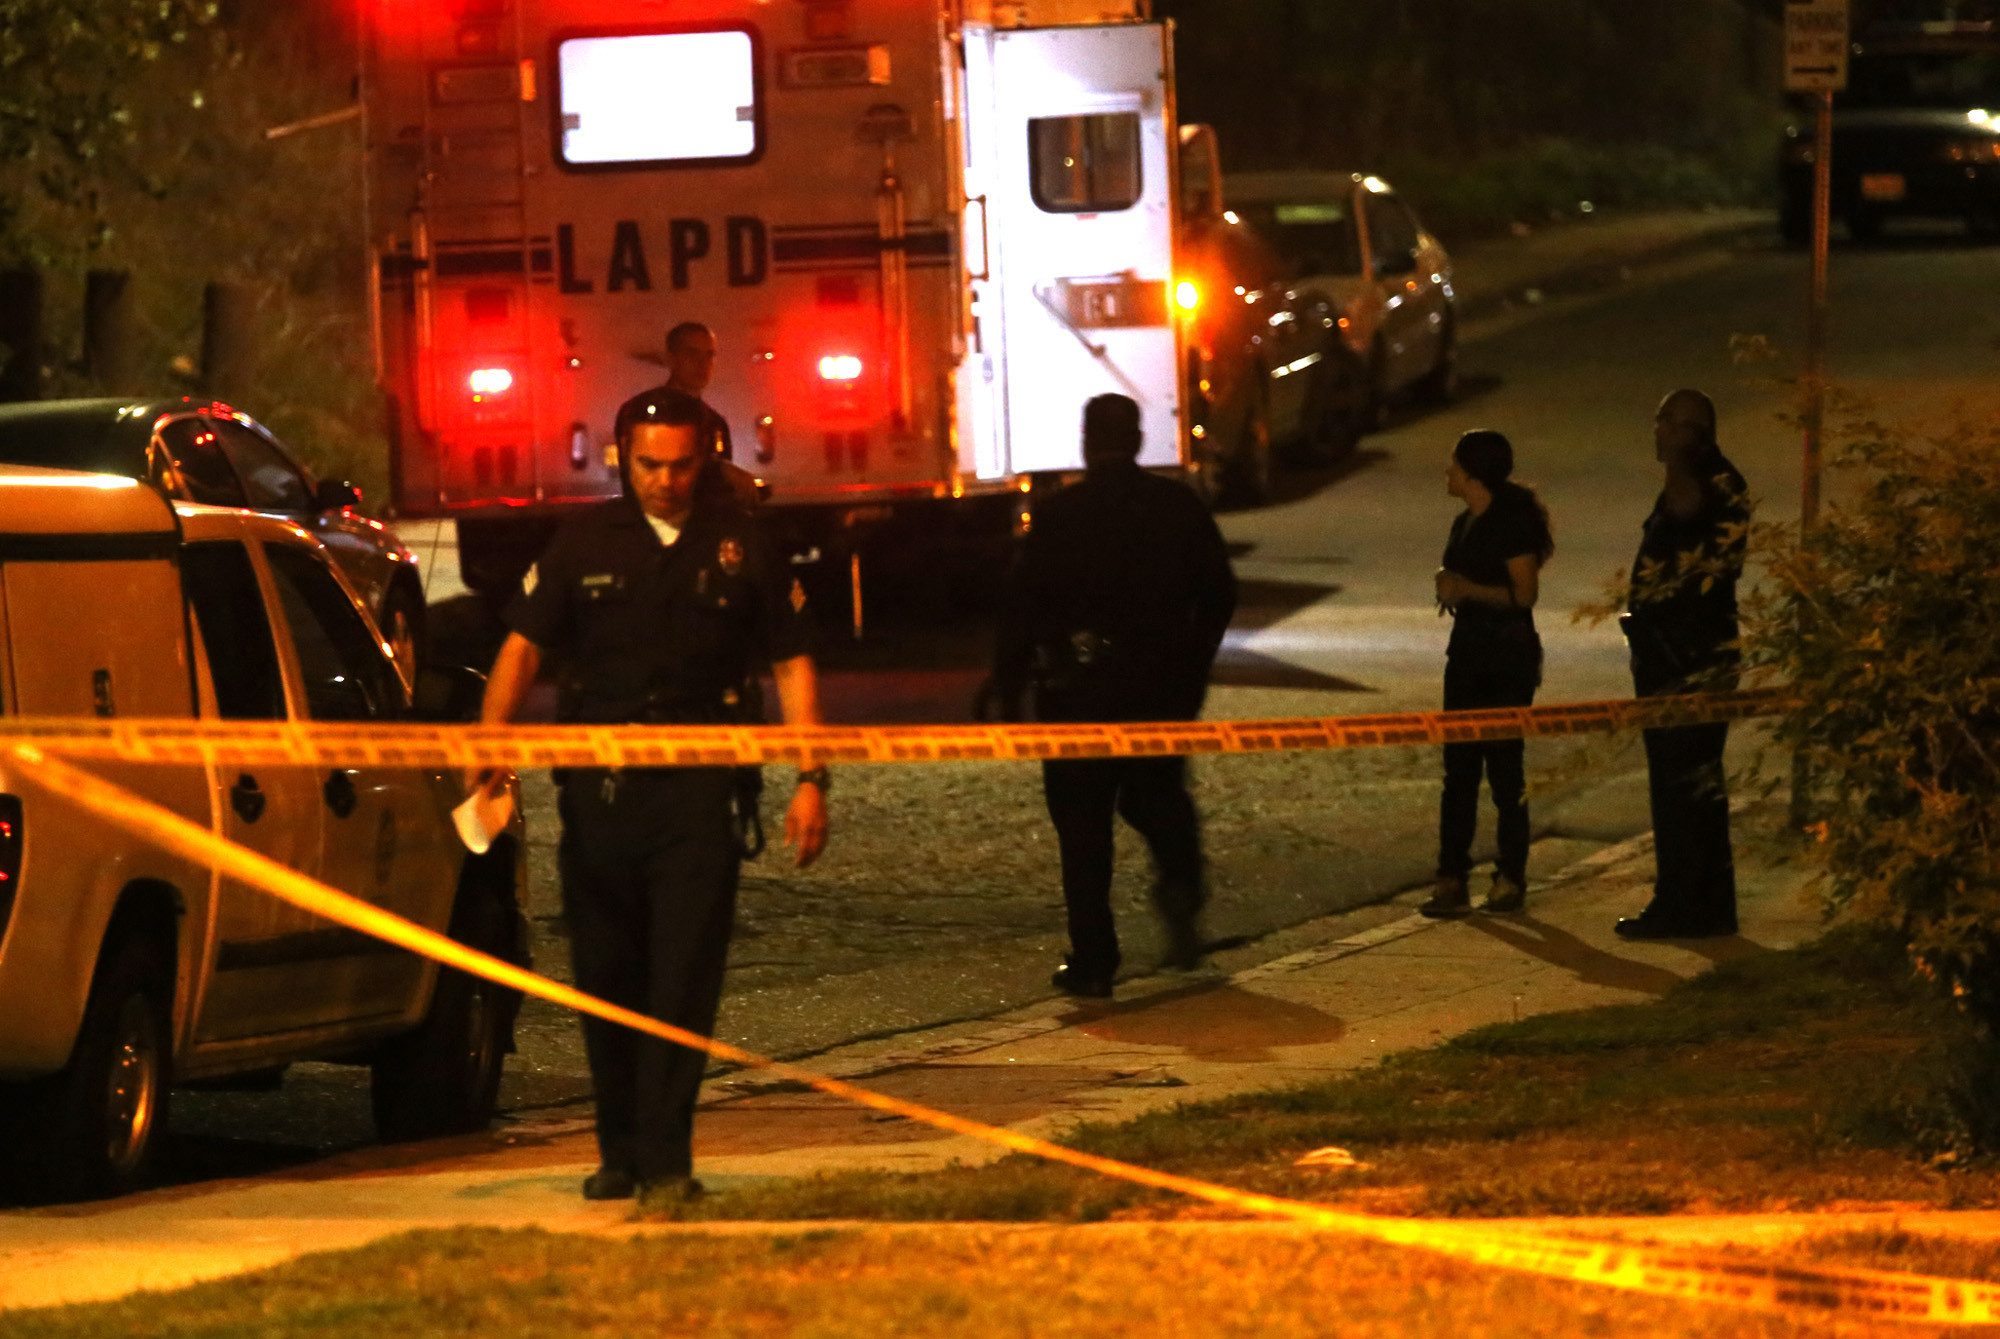 Crime In Los Angeles Rose In All Categories In 2015, Lapd Says La Times  Crime